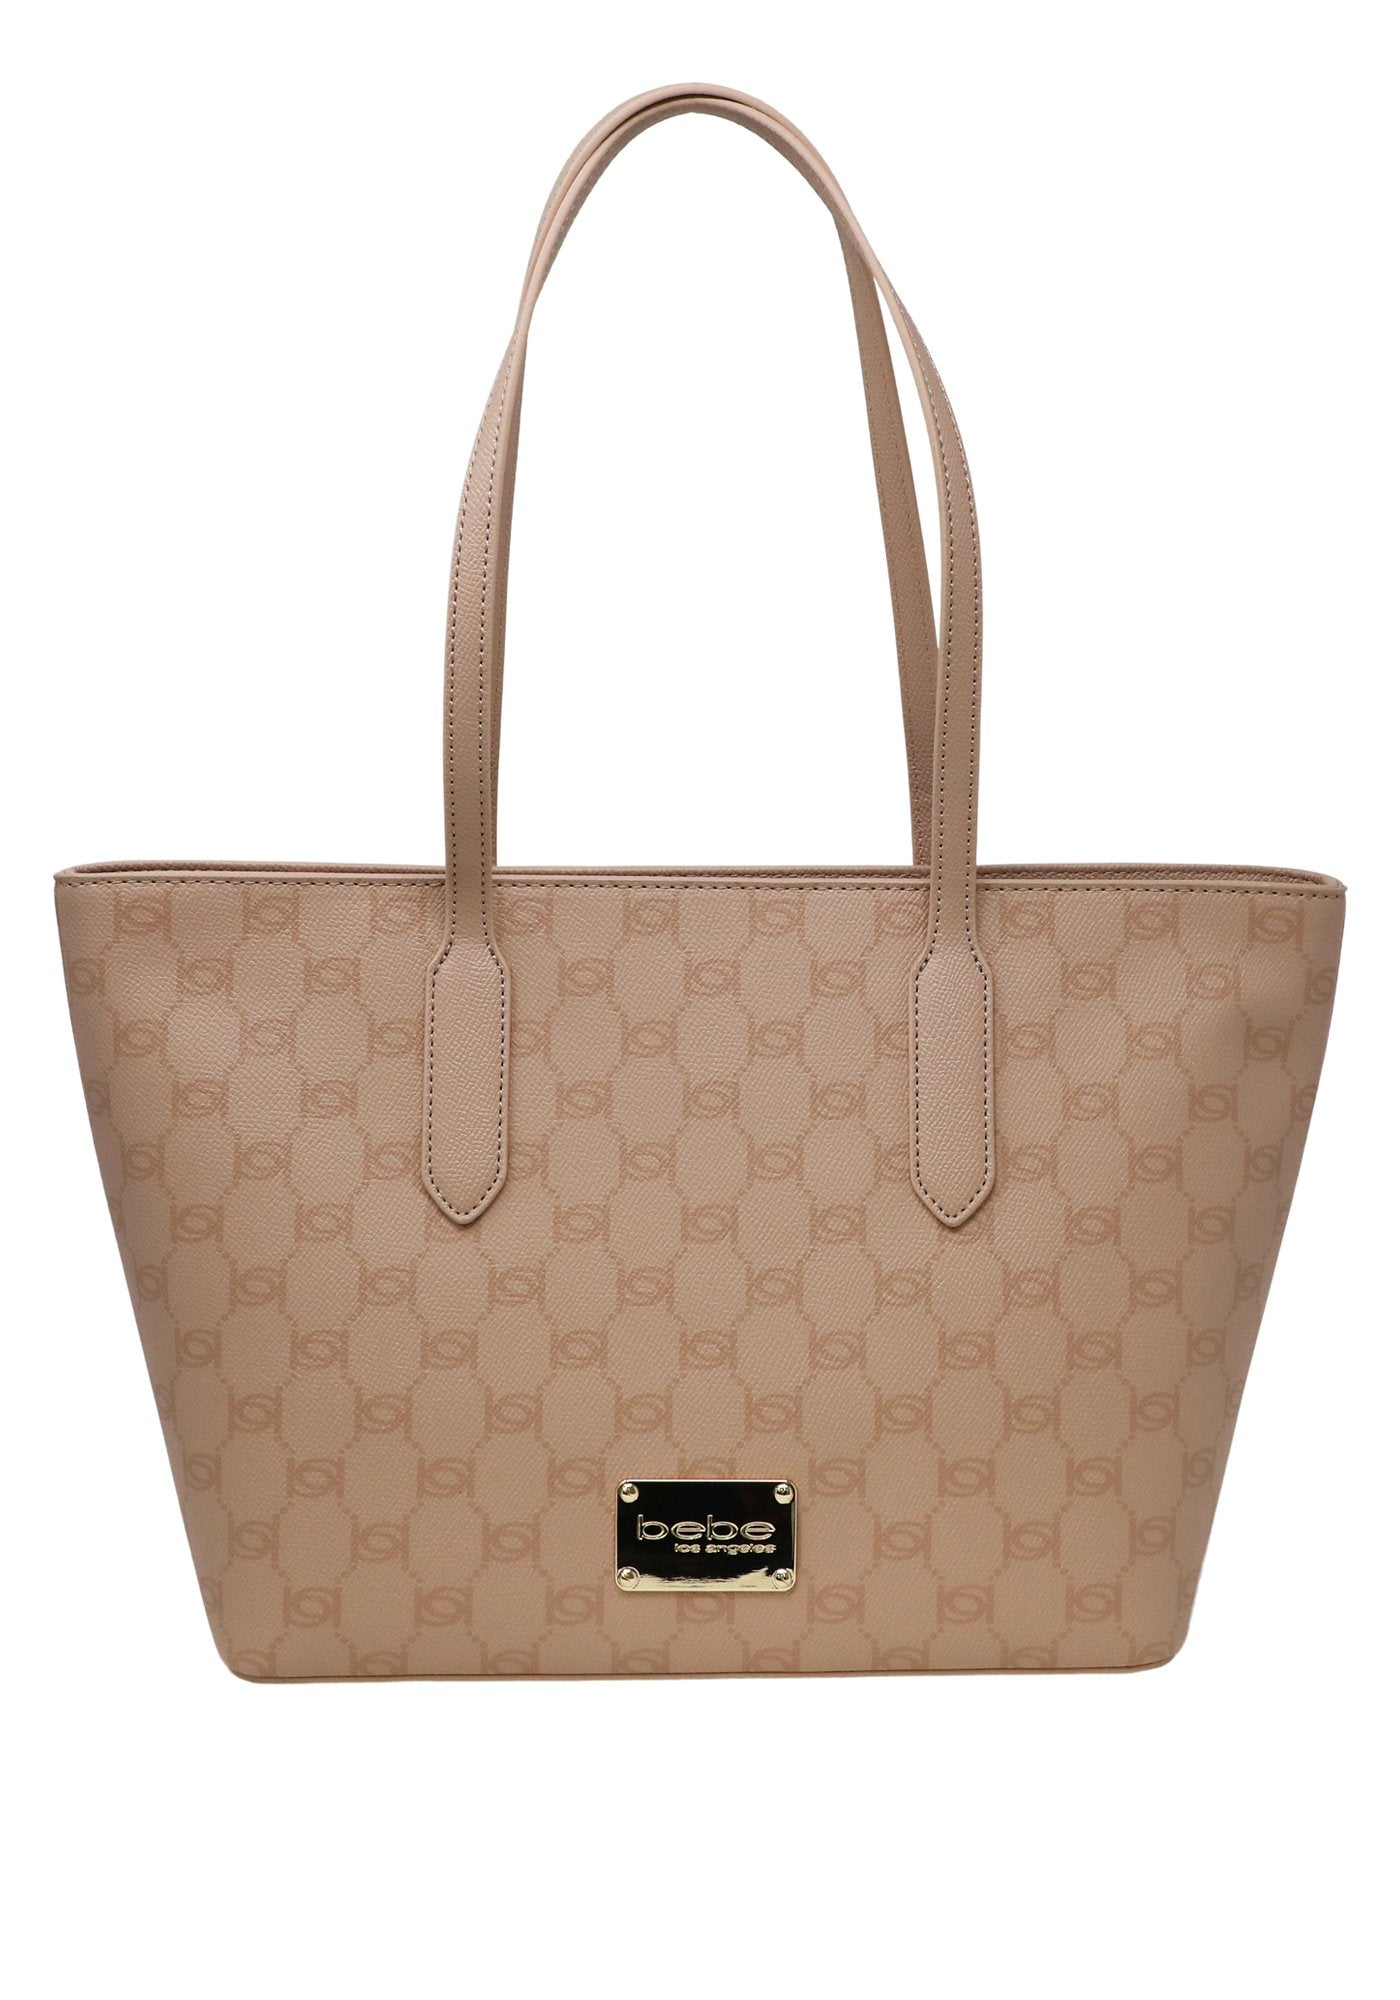 Bebe Women's Lizzie Small Tote Bag, Size OS in Blush Polyurethane